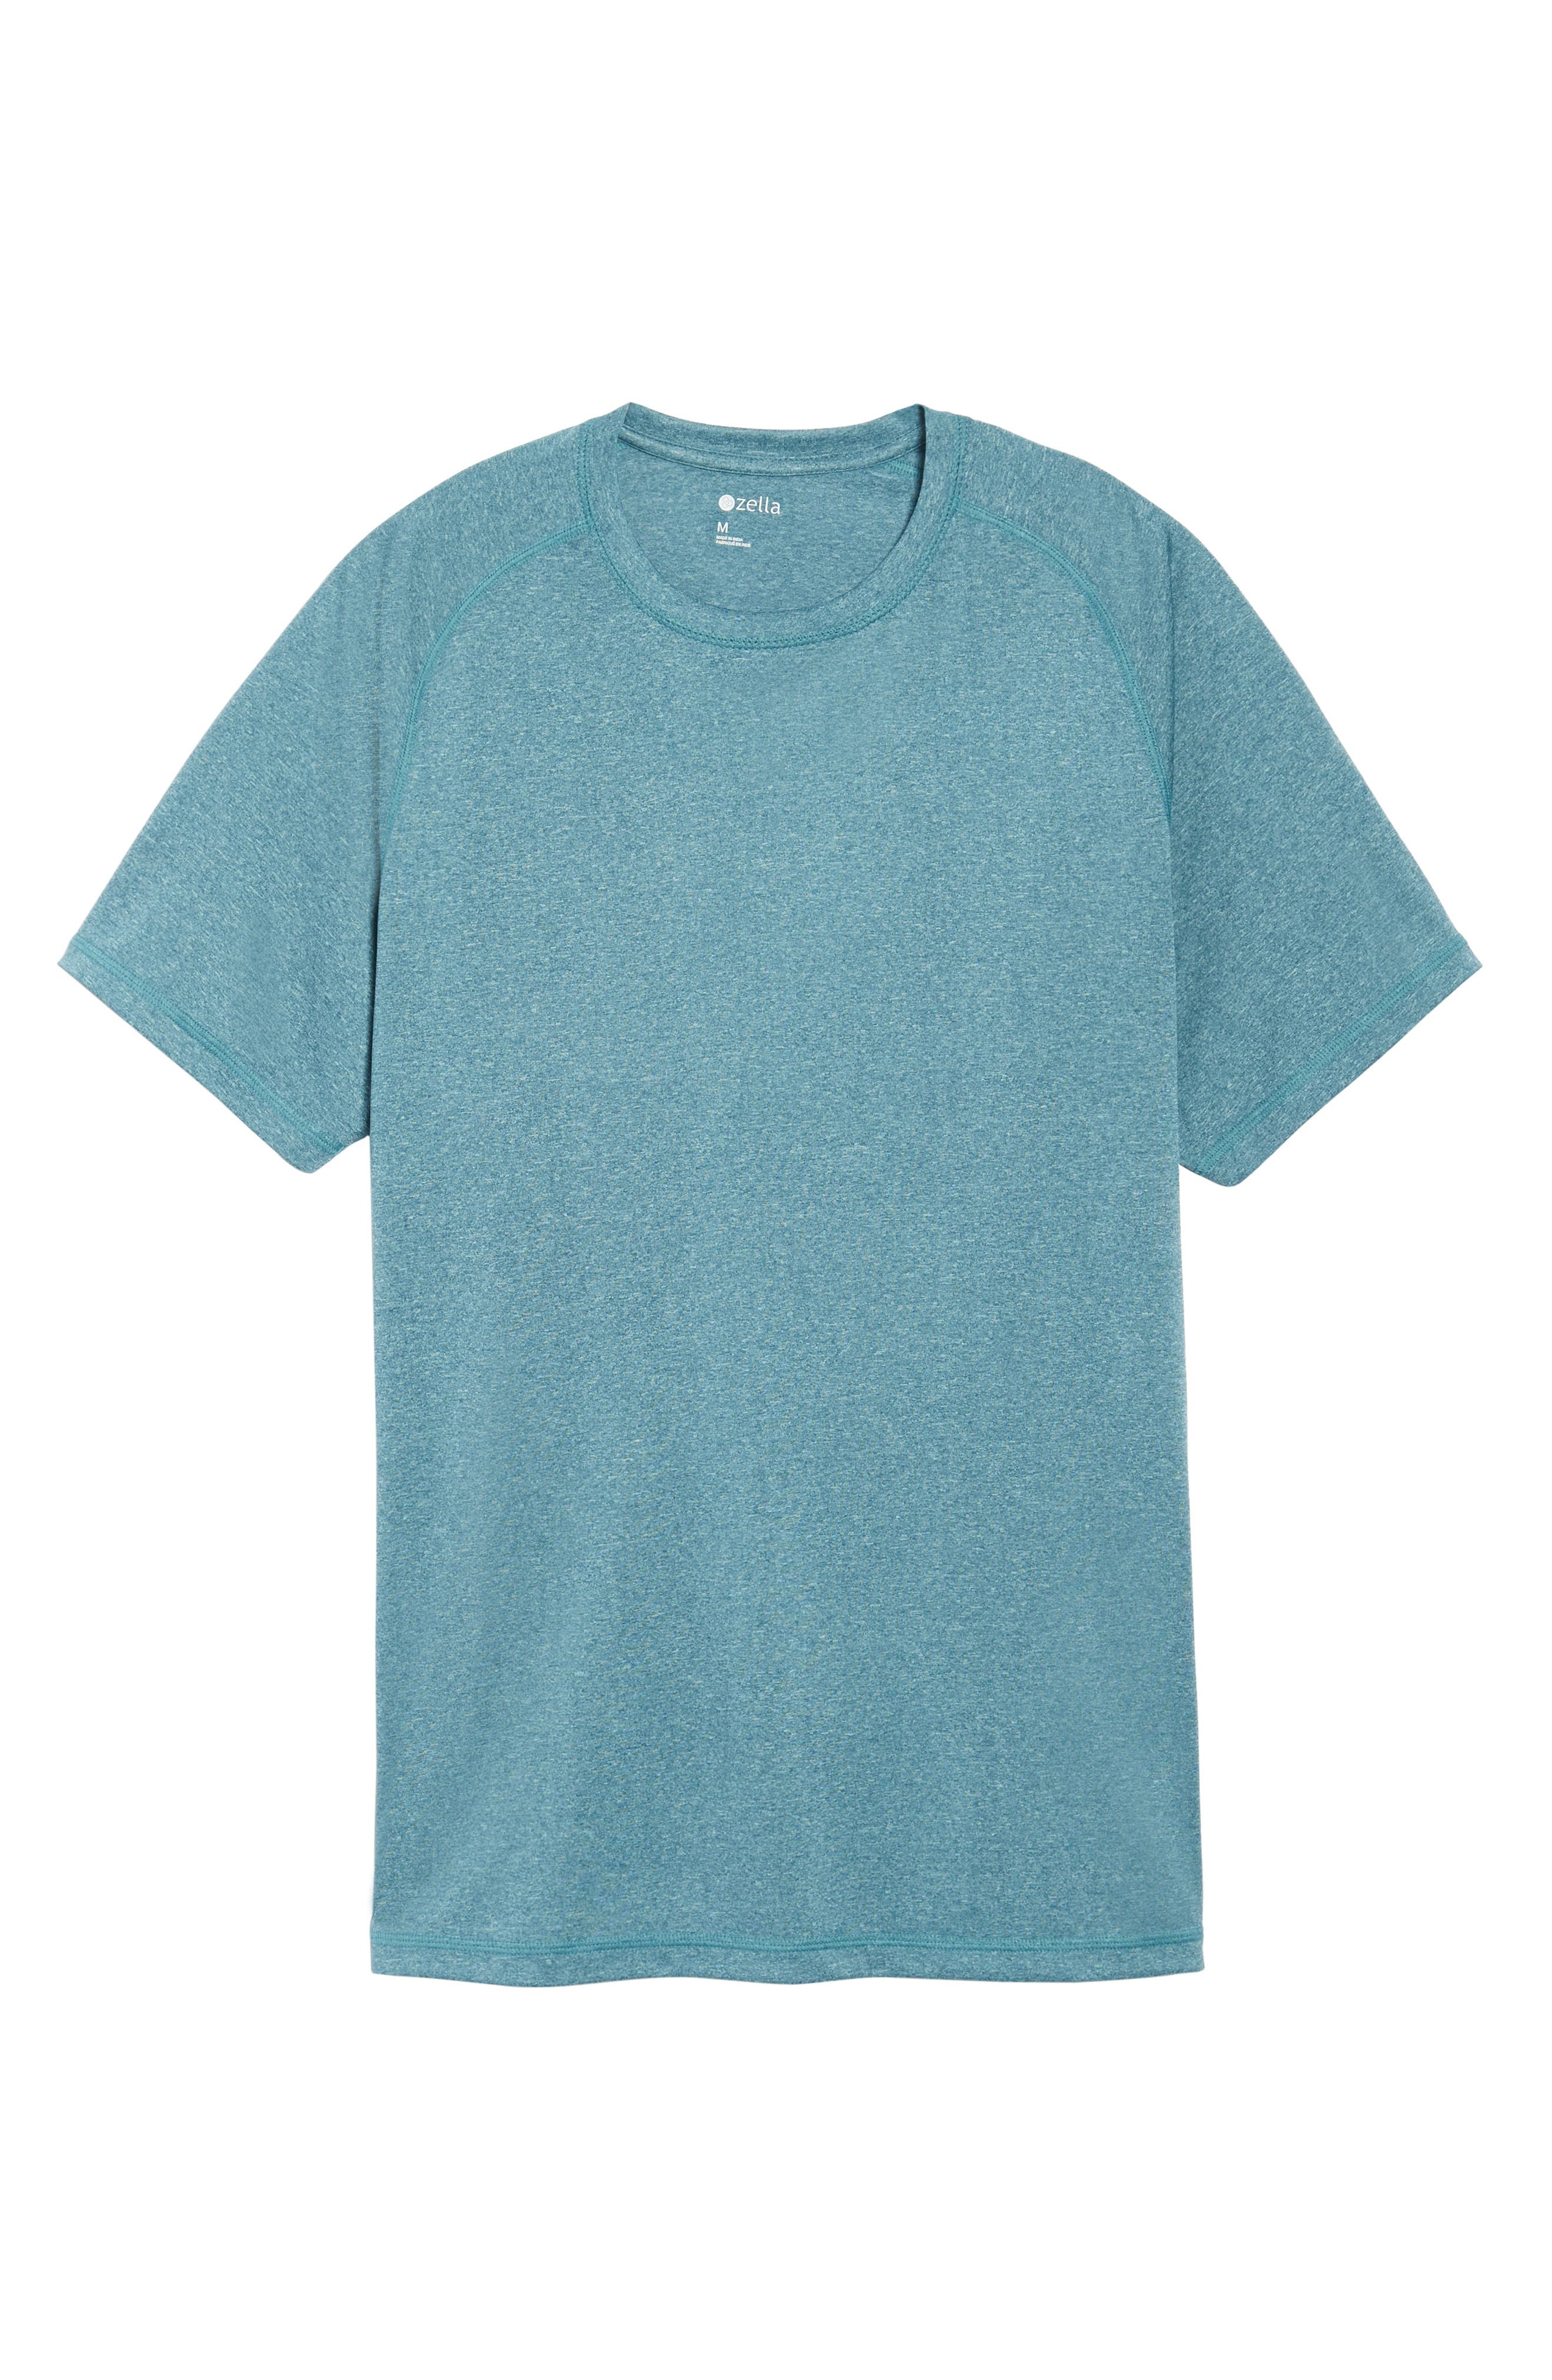 Jordanite Crewneck T-Shirt,                             Alternate thumbnail 6, color,                             Teal Tourmaline Melange